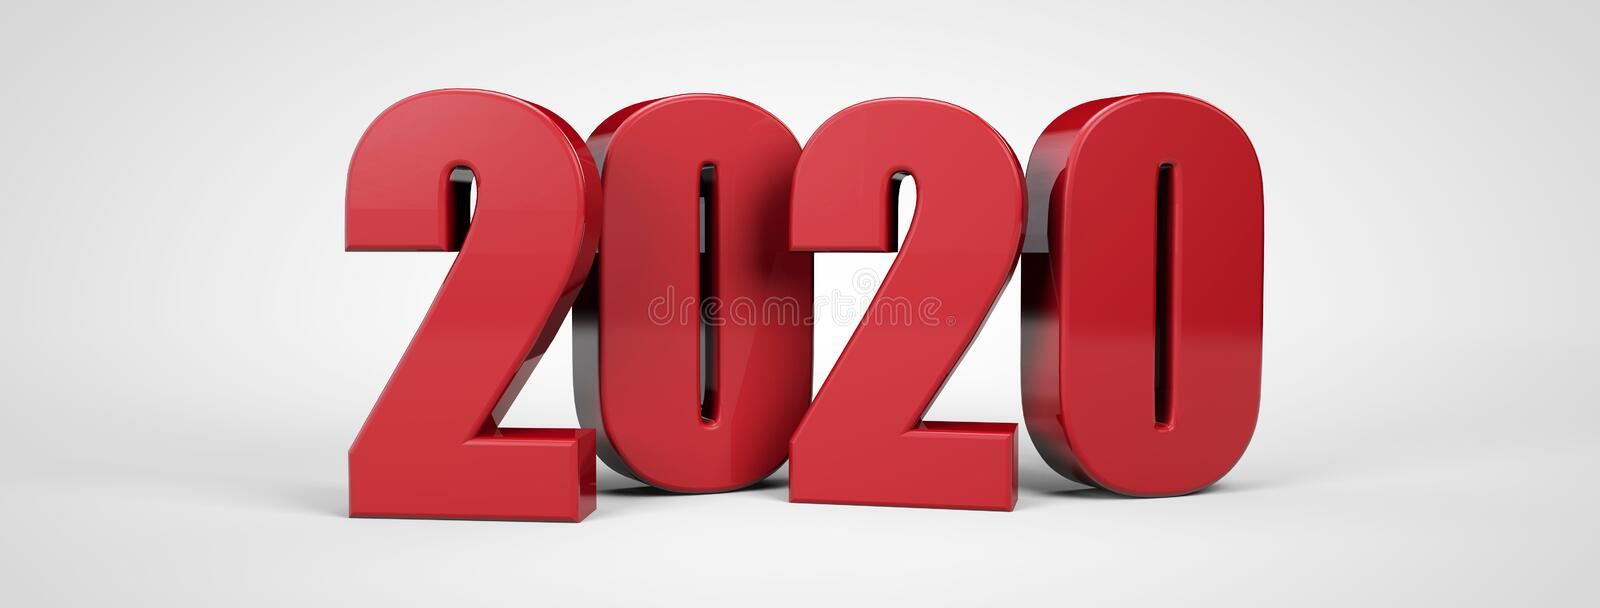 2020 new year 3d red metallic text 3d render vector illustration